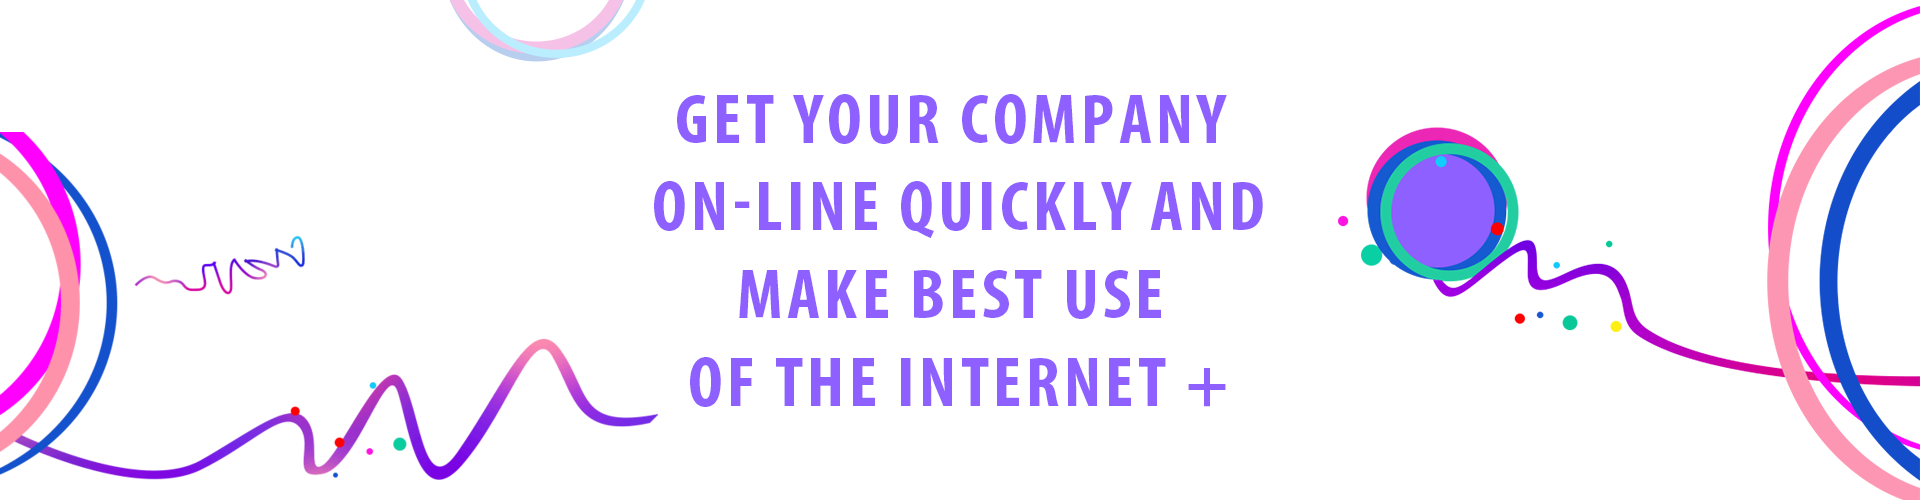 get your company on-line quickly and make best use of the internet+